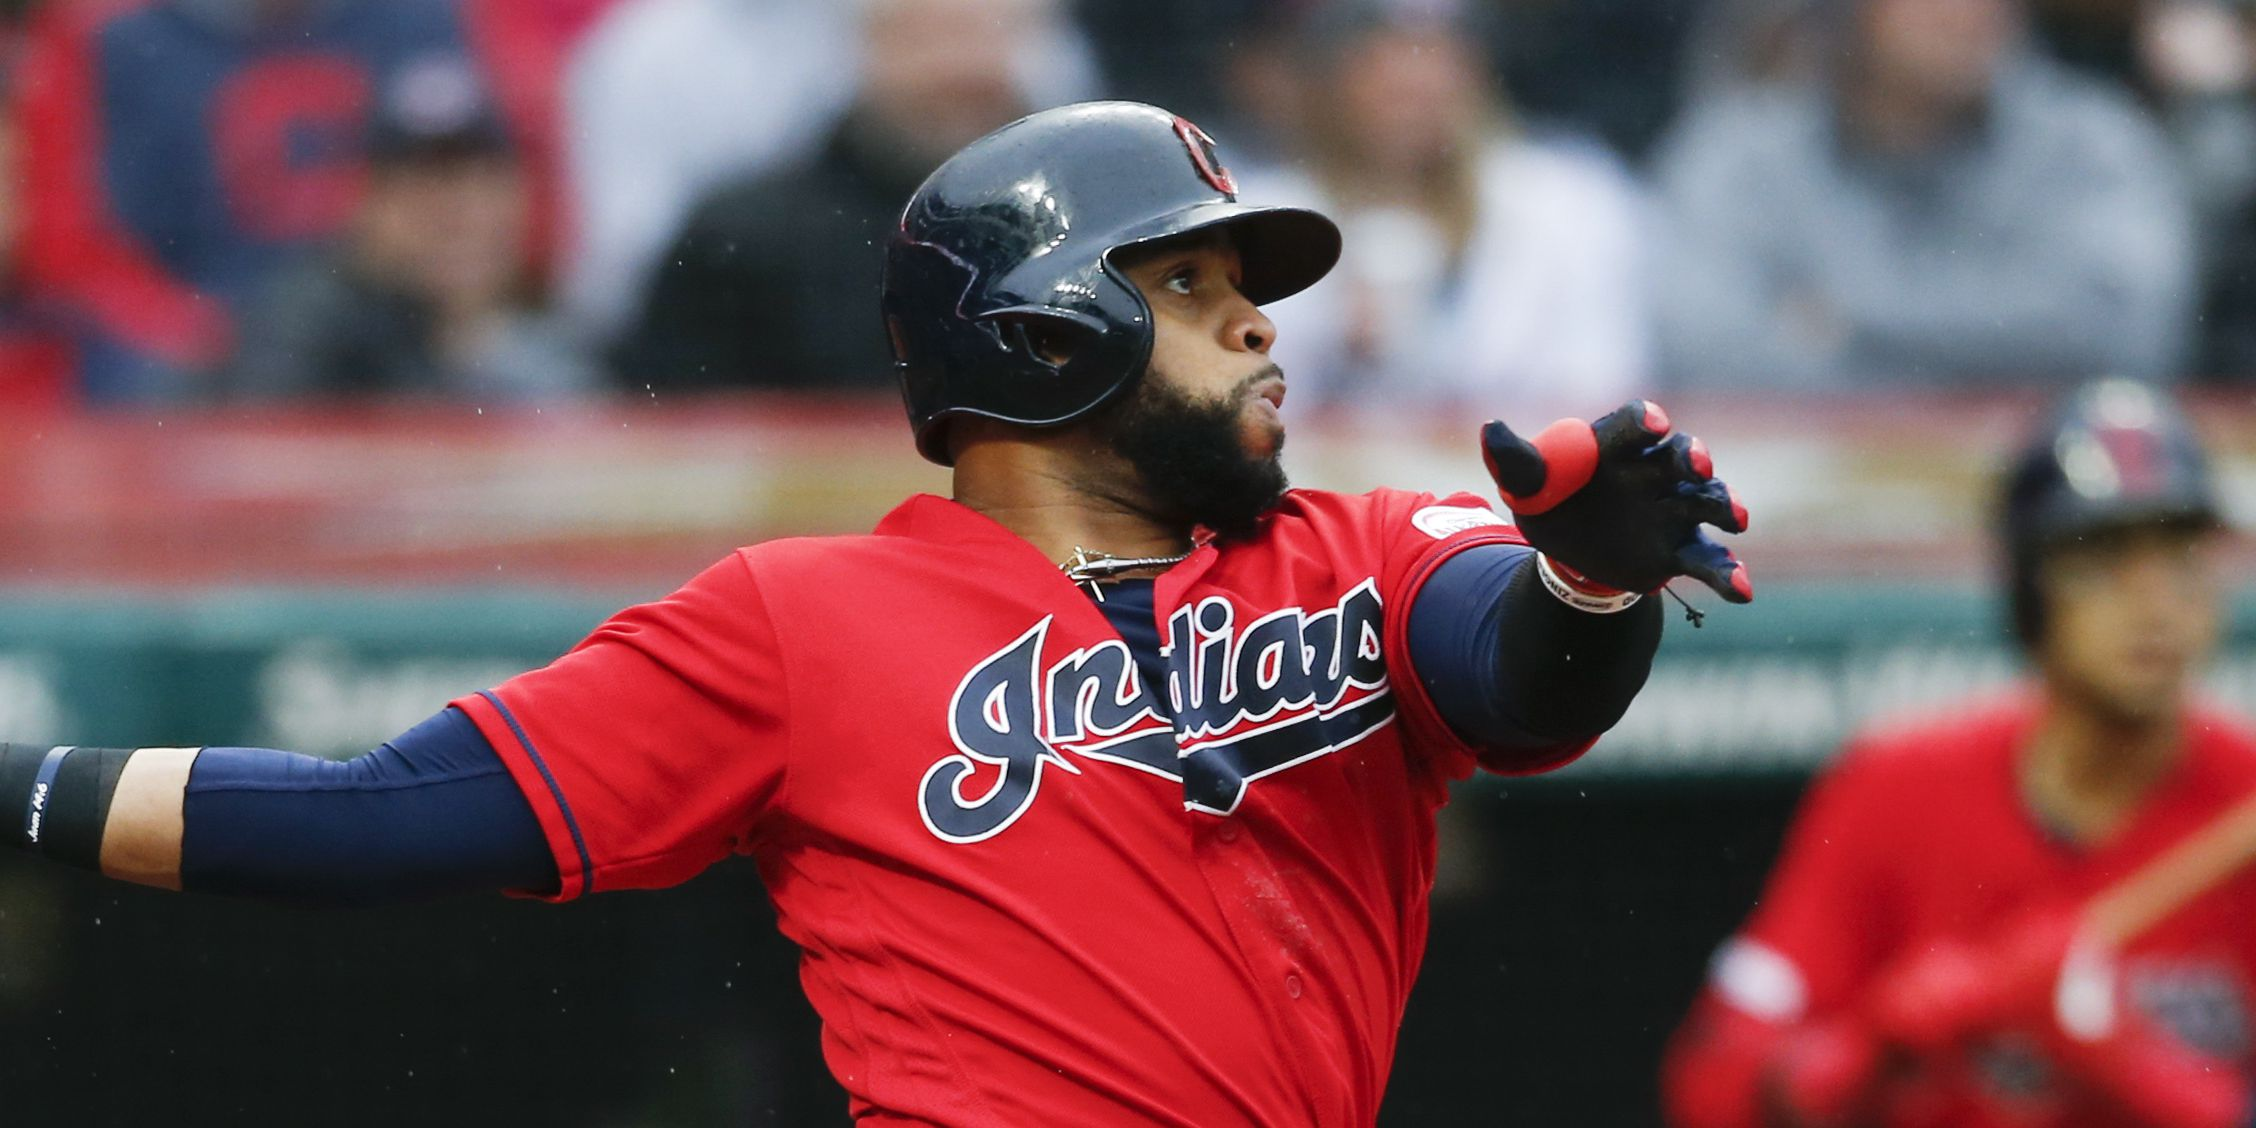 Santana HR in 8th, Indians send Mariners to 6th loss in row